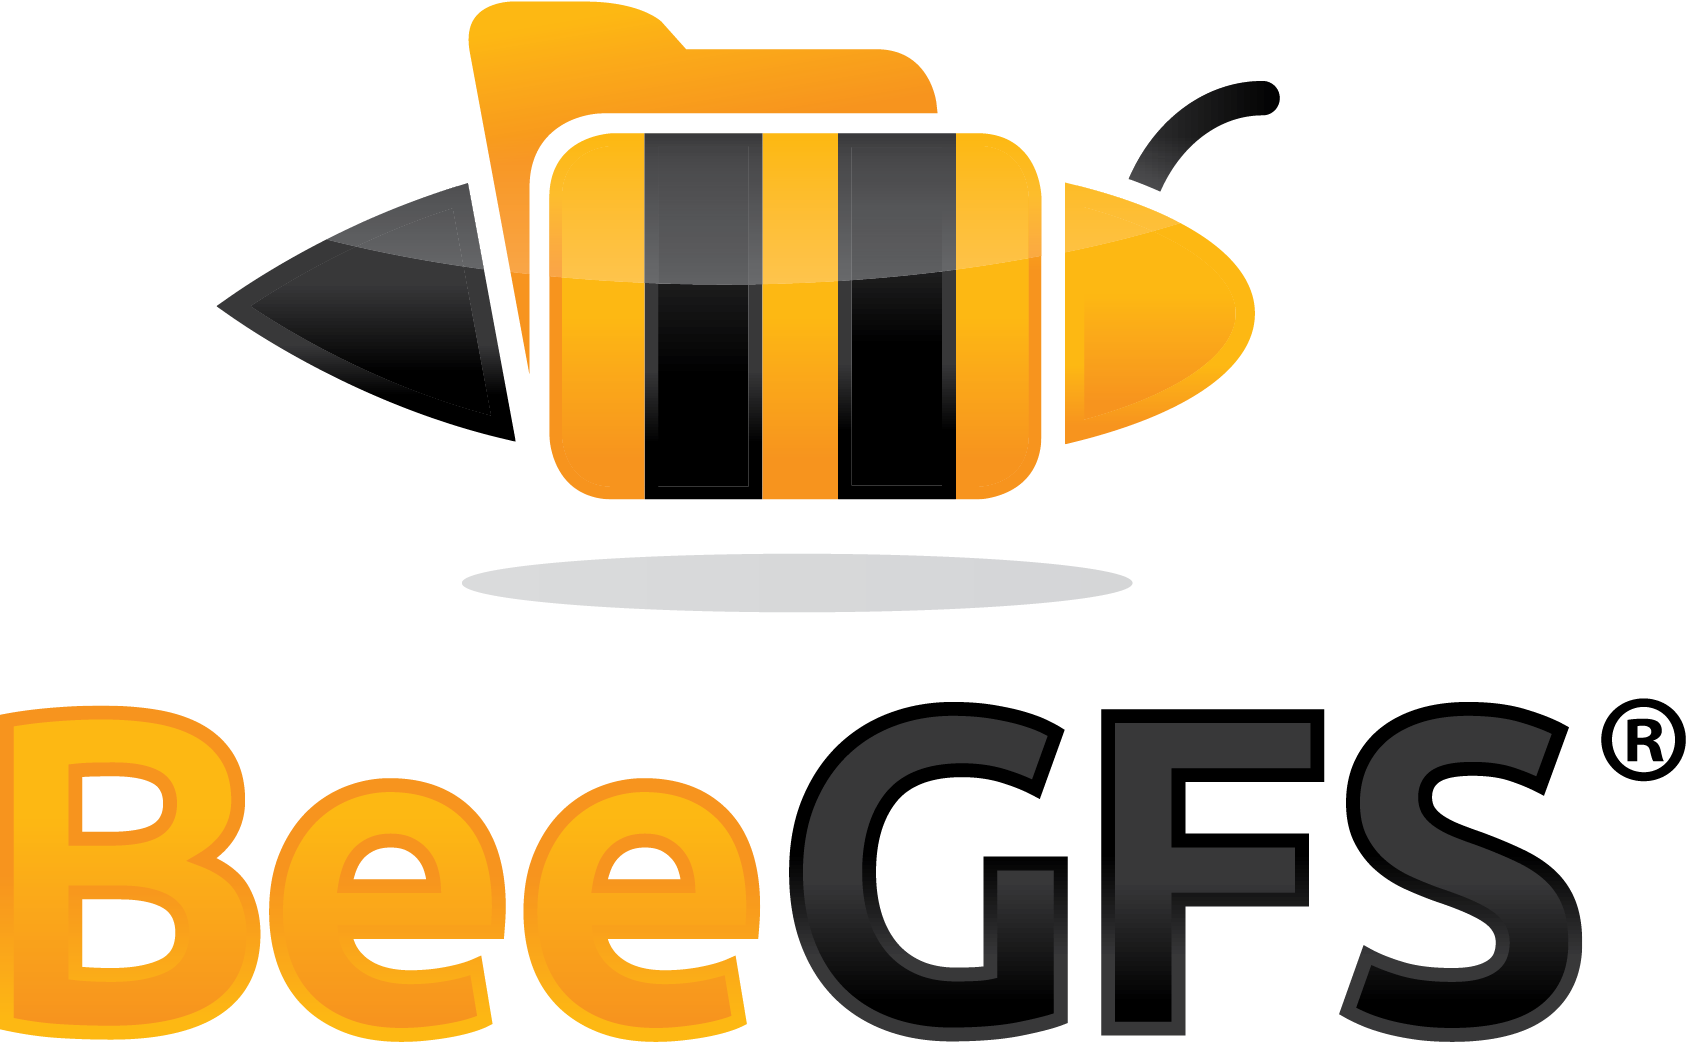 BeeGFS